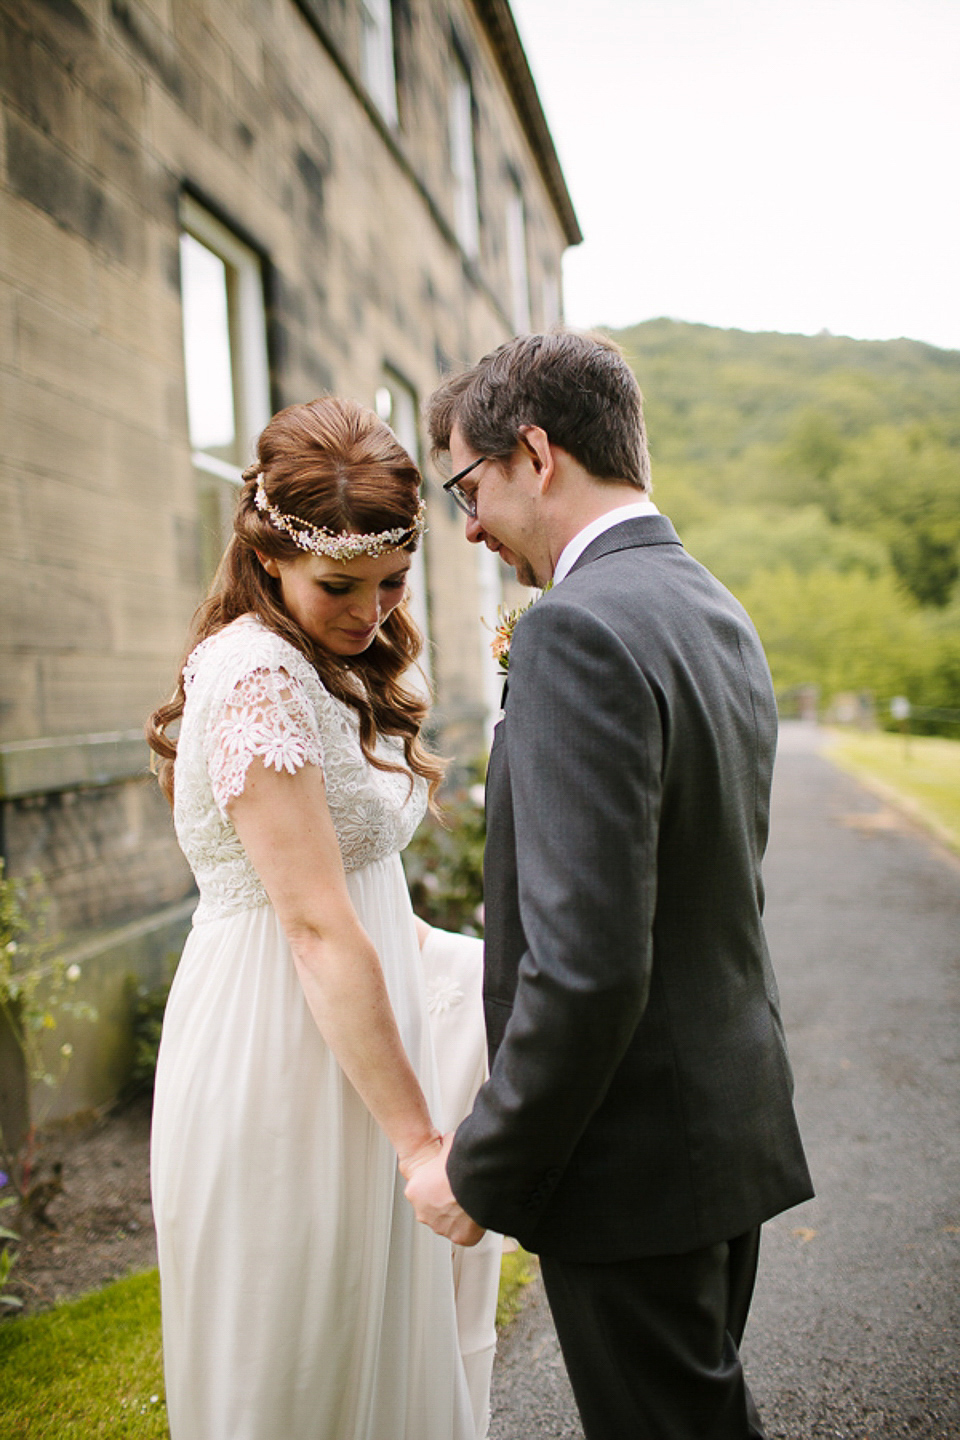 A Bespoke 1960s Inspired Gown for a Garden Party Wedding Filled with Wild Blooms (Weddings )